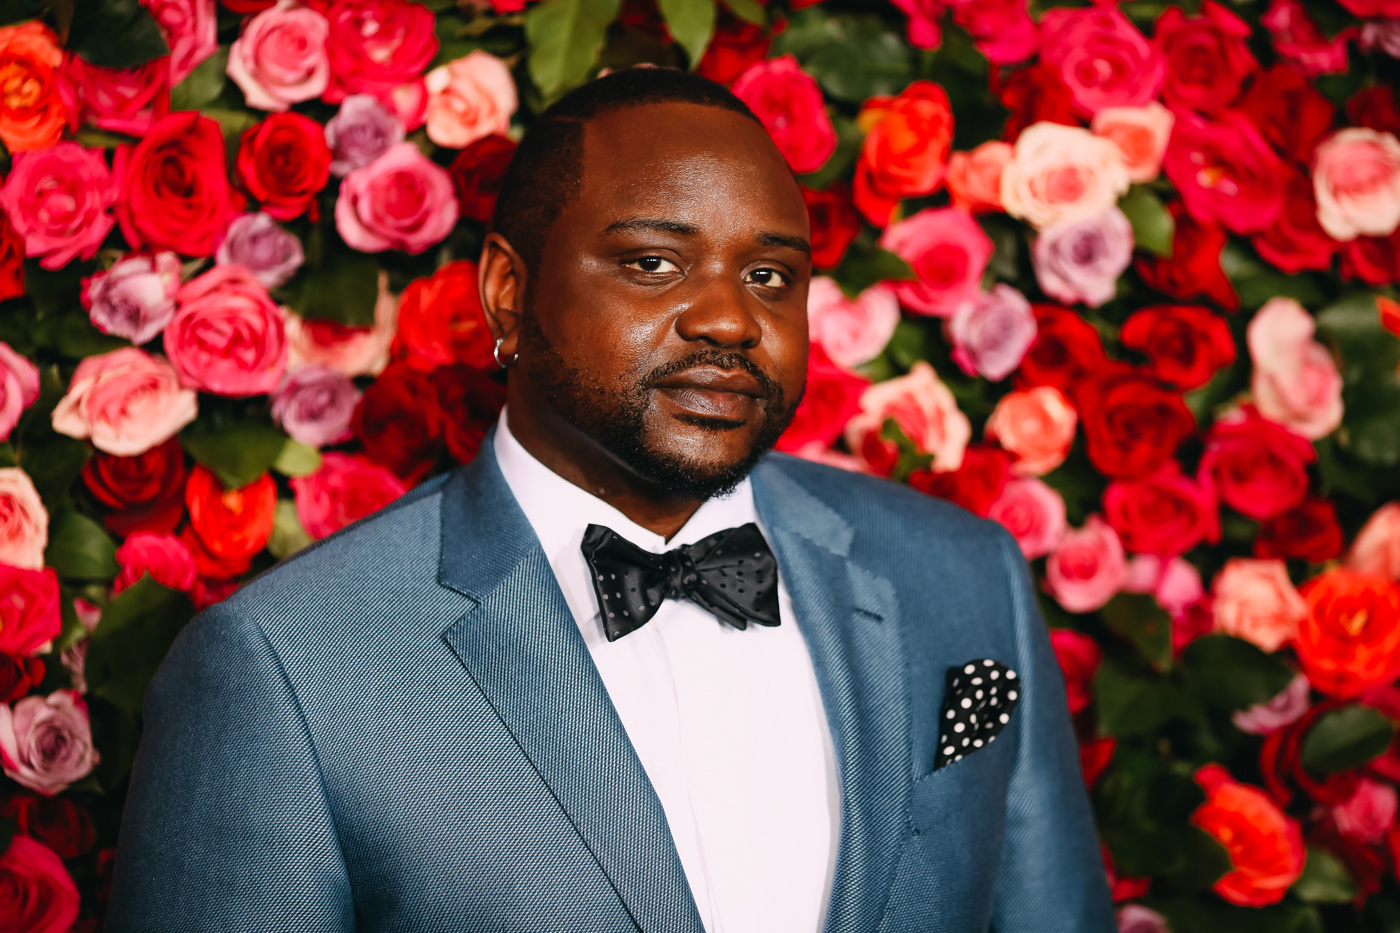 Lobby Hero Tony nominee Brian Tyree Henry has arrived